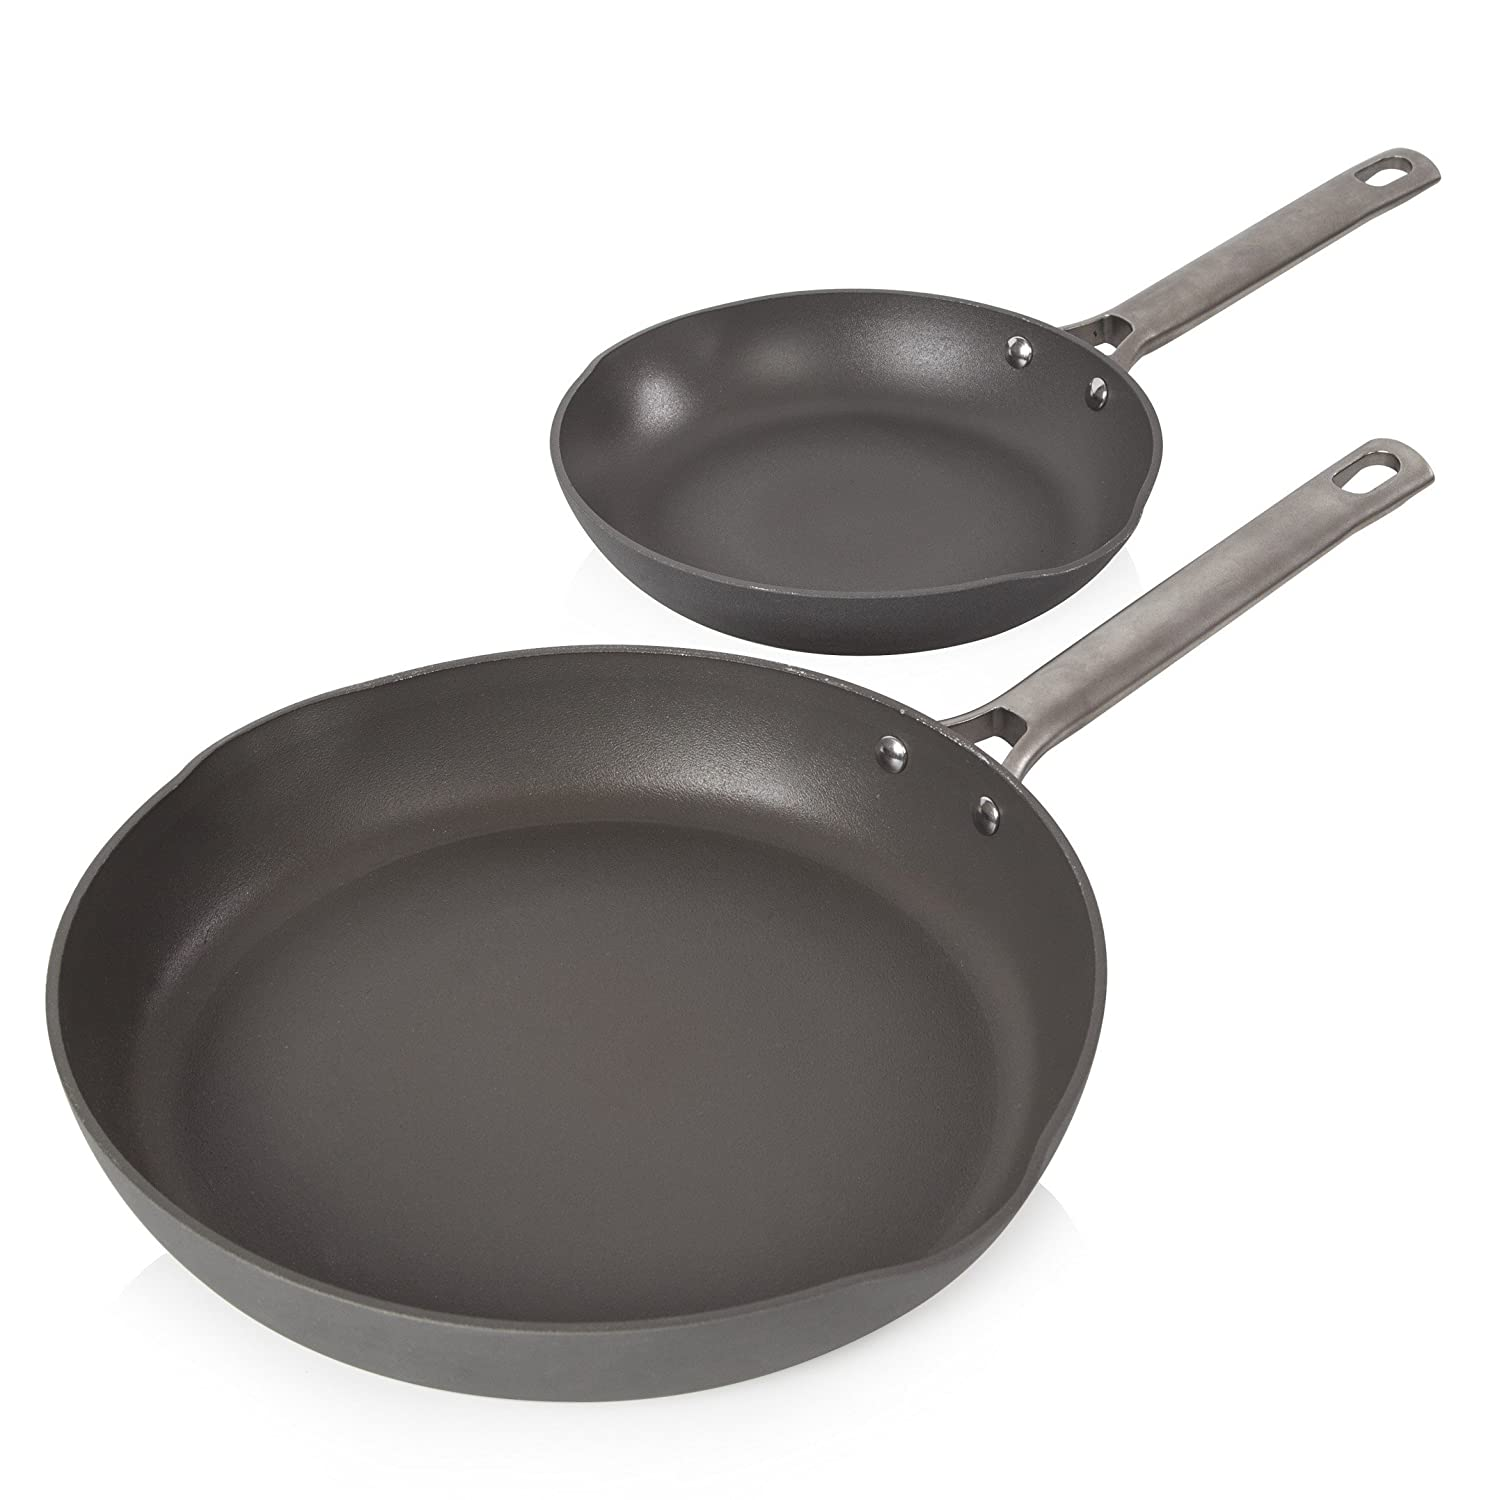 Details about Tower Pro Hard Anodised Frying Pan Set with Easy Clean  Non-Stick Ceramic Coating